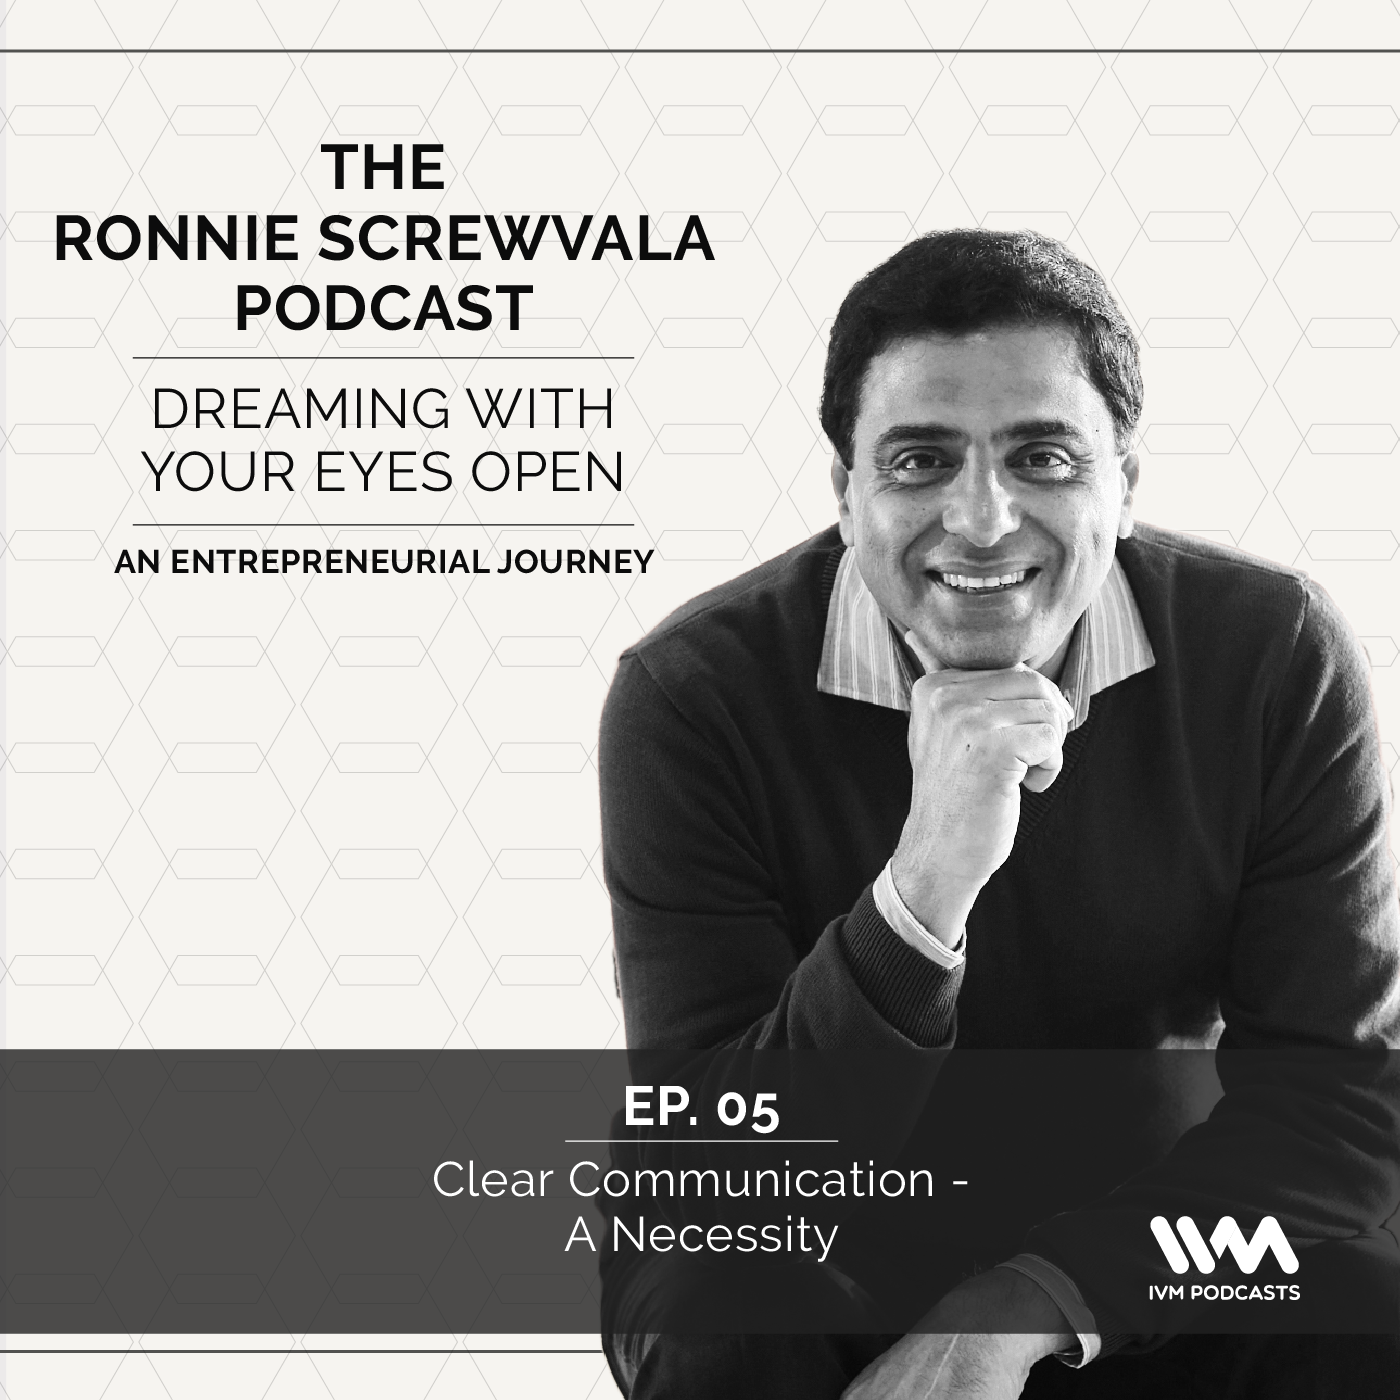 Ep. 05: Clear Communication - A Necessity